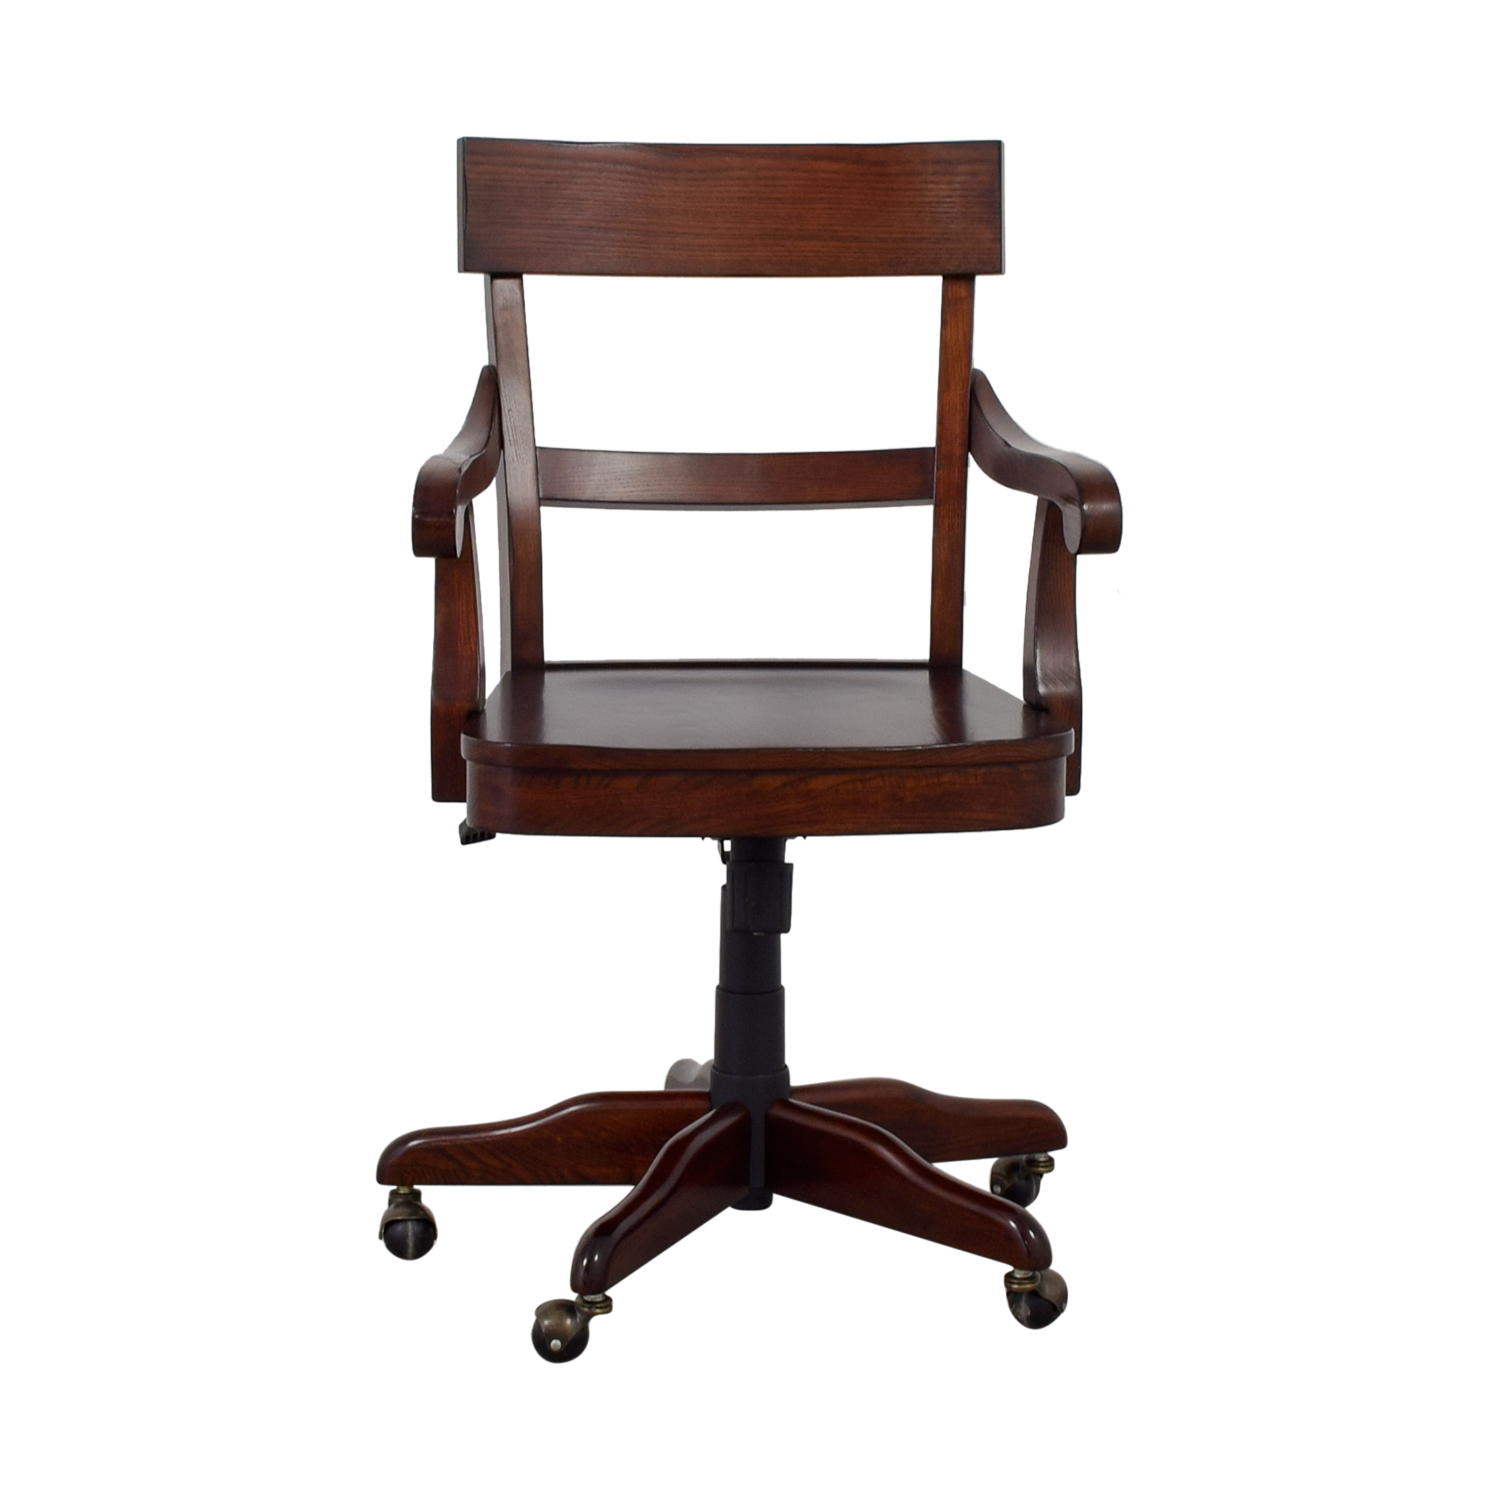 Pottery Barn Pottery Barn Swivel Wood Desk Chair Chairs